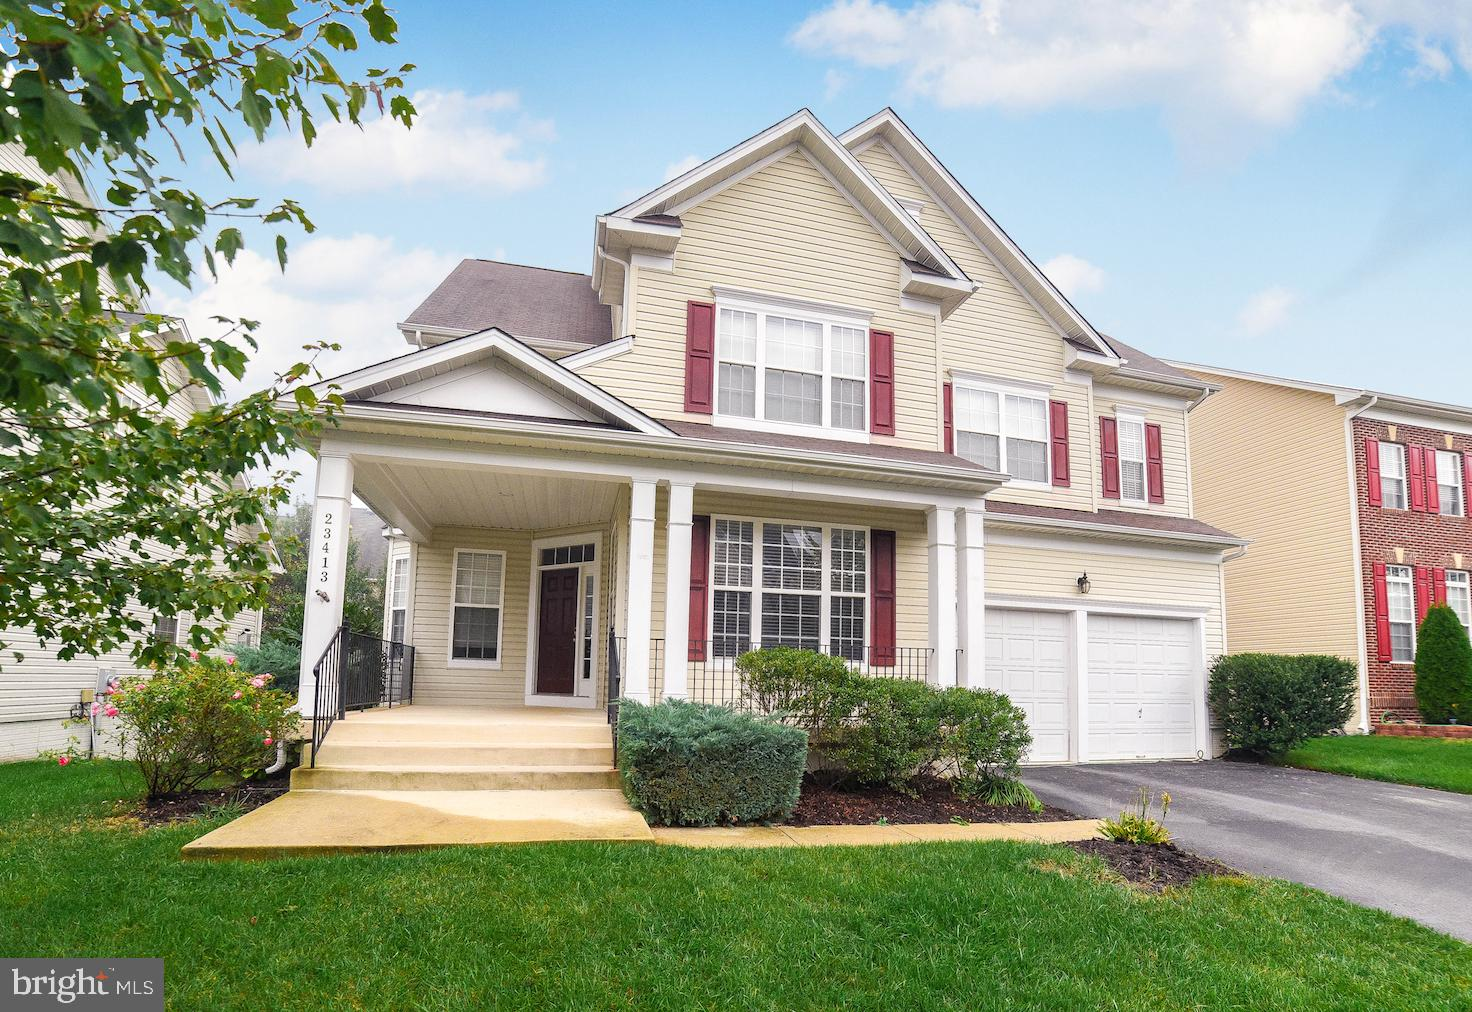 This spacious Colonial is move-in ready! Freshly painted 4 bedroom, 3.5 bath with 3000+sq ft. Beauti